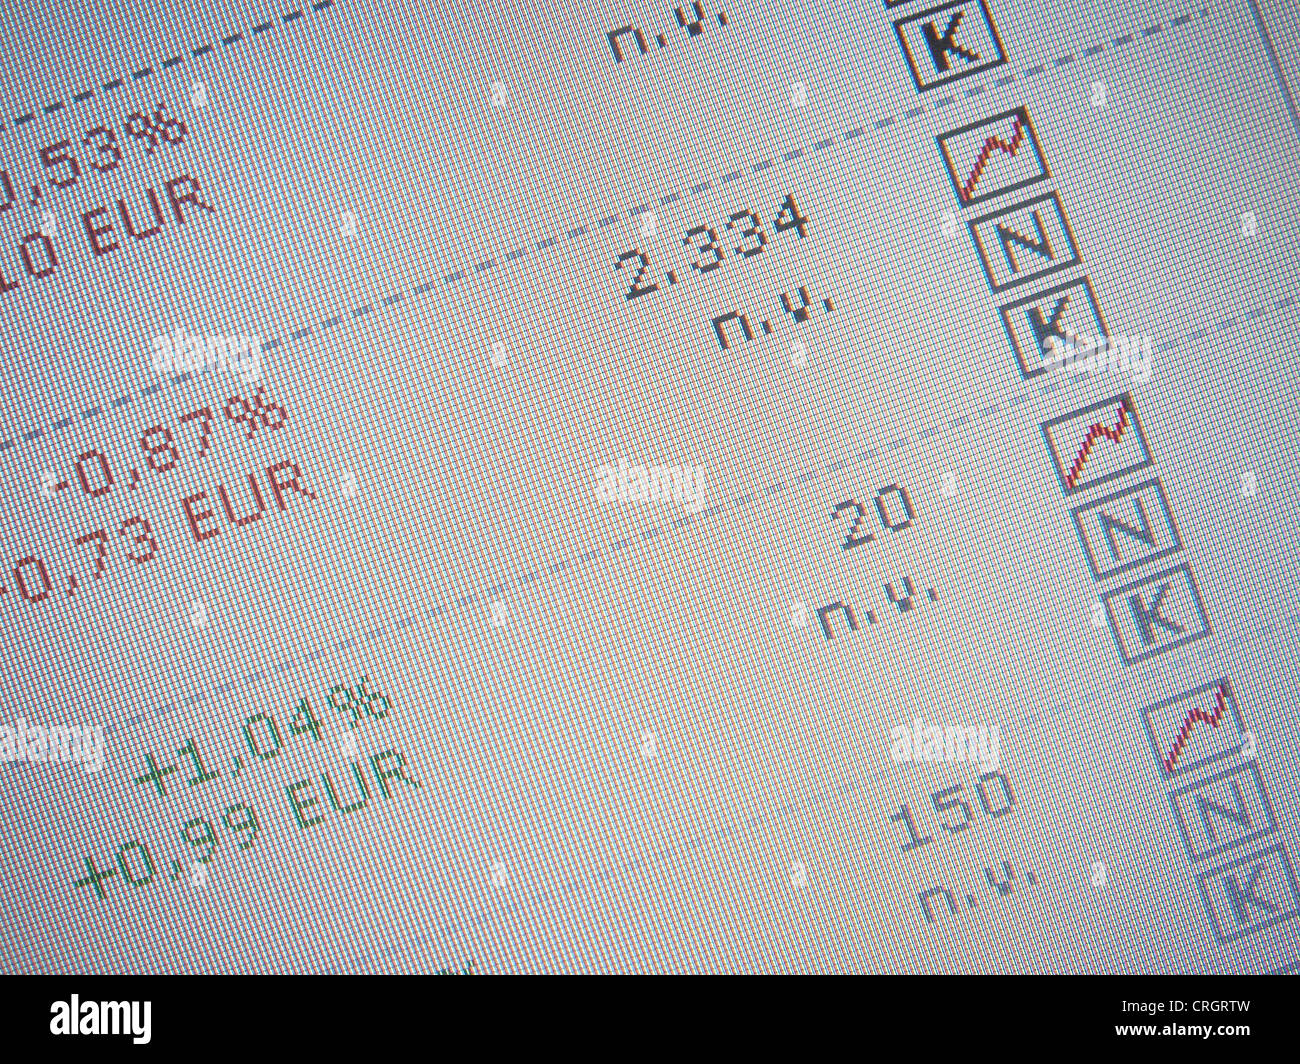 stock market quotations - Stock Image